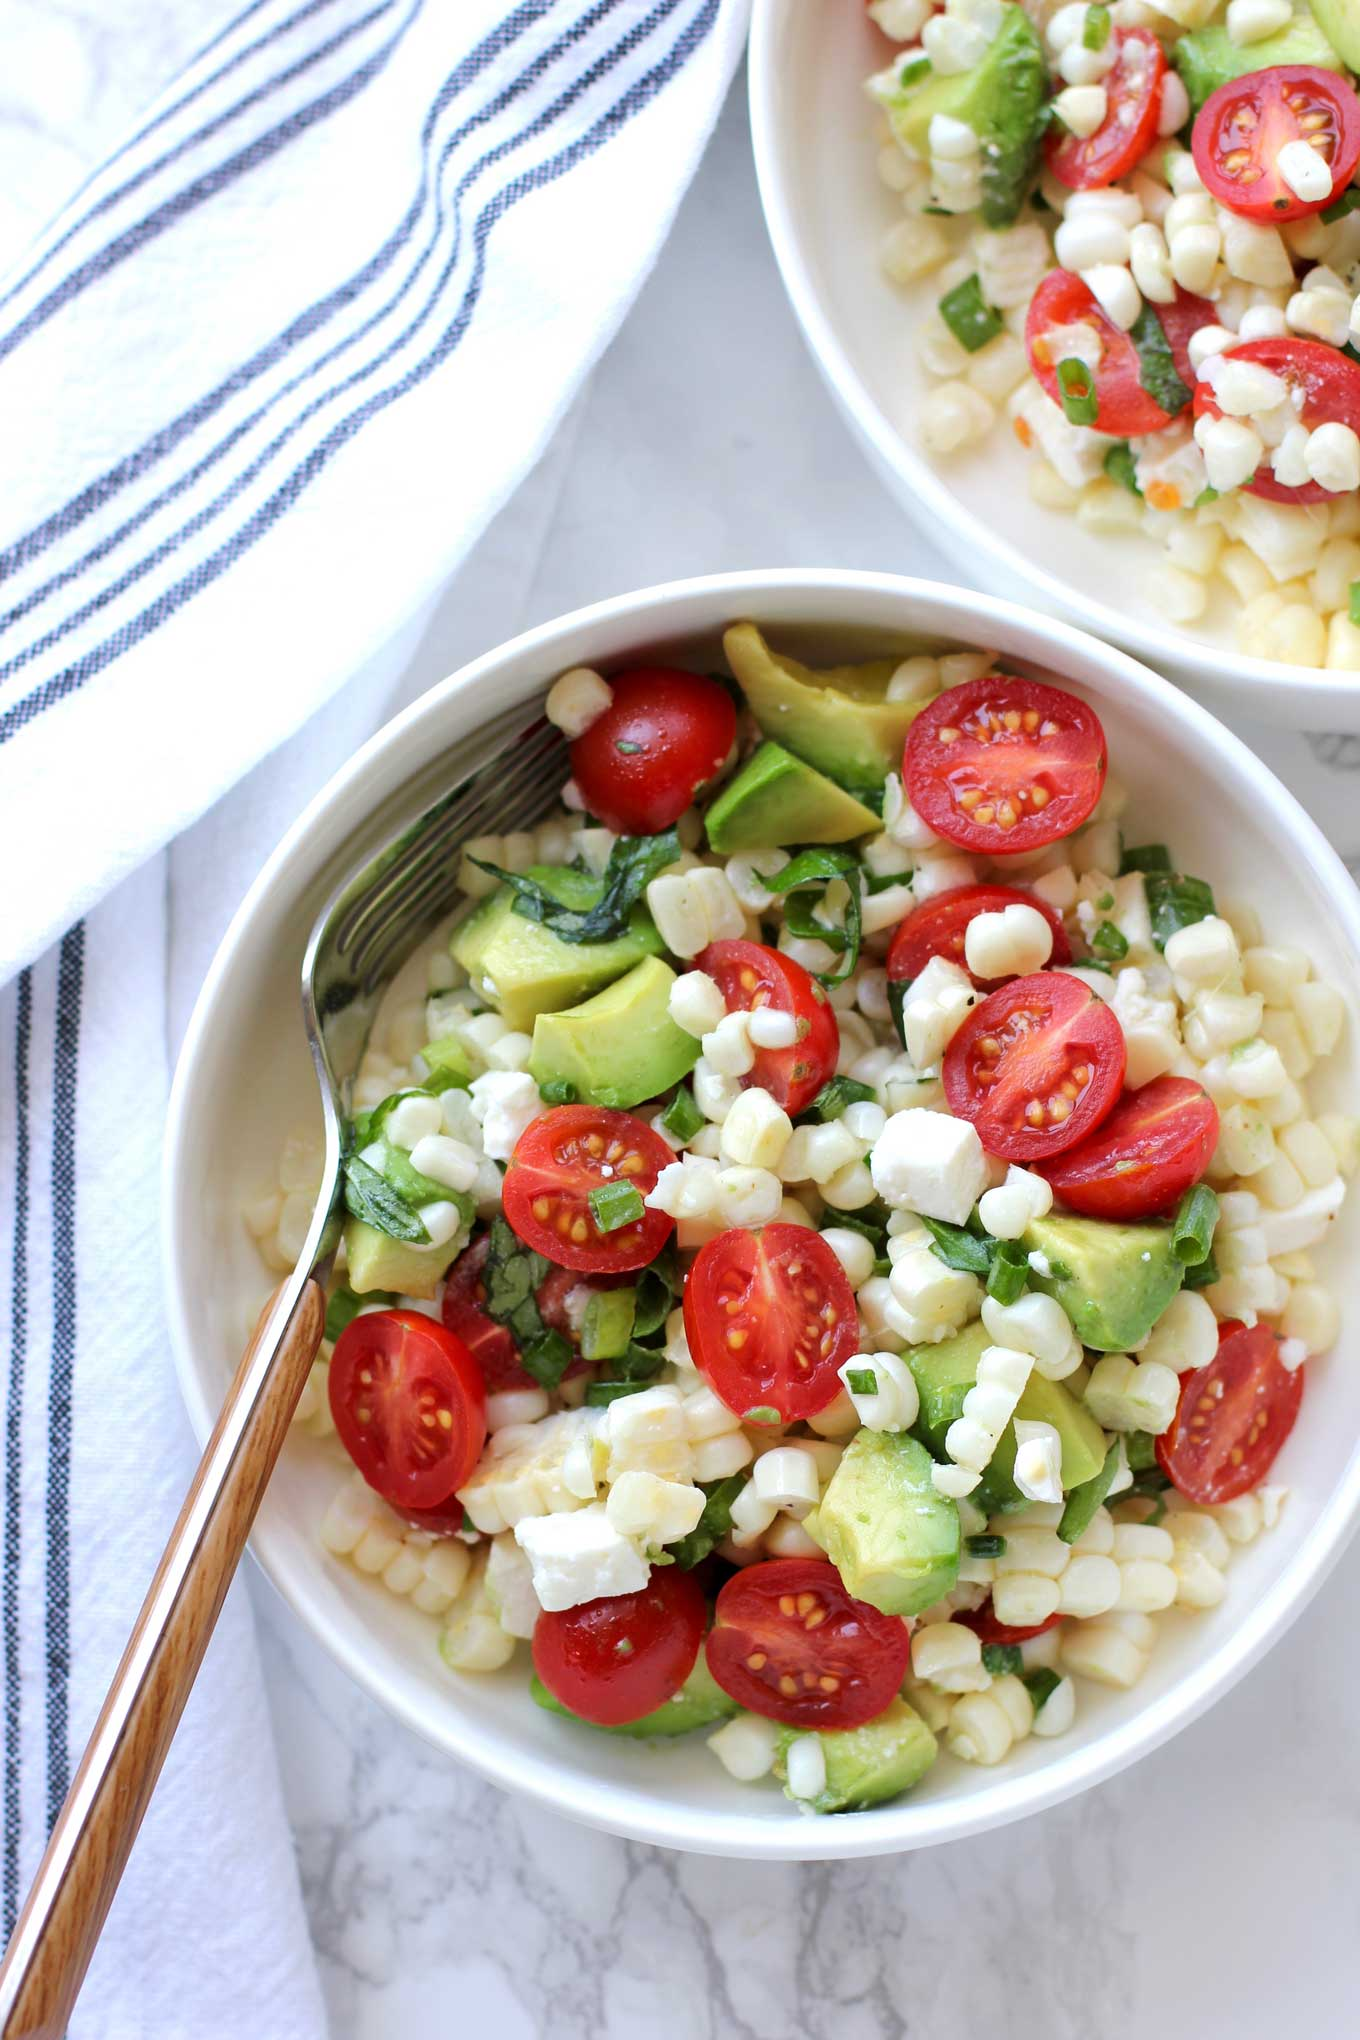 Fresh-Corn-Salad-With-Cherry-Tomatoes-And-Avocado-single-serving